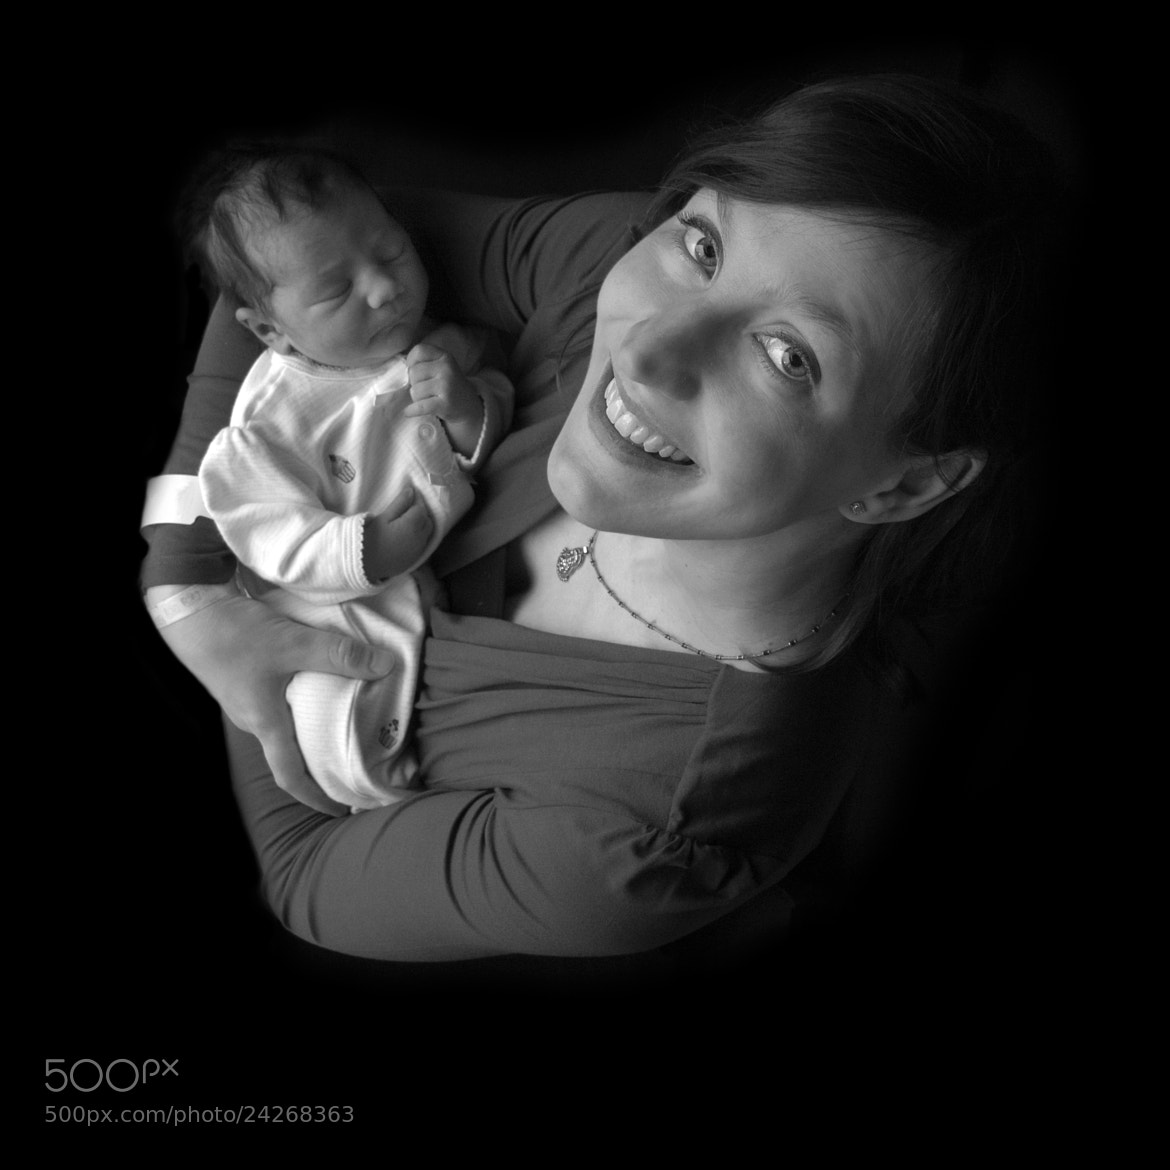 Photograph postnatal! by Francisco Marty on 500px